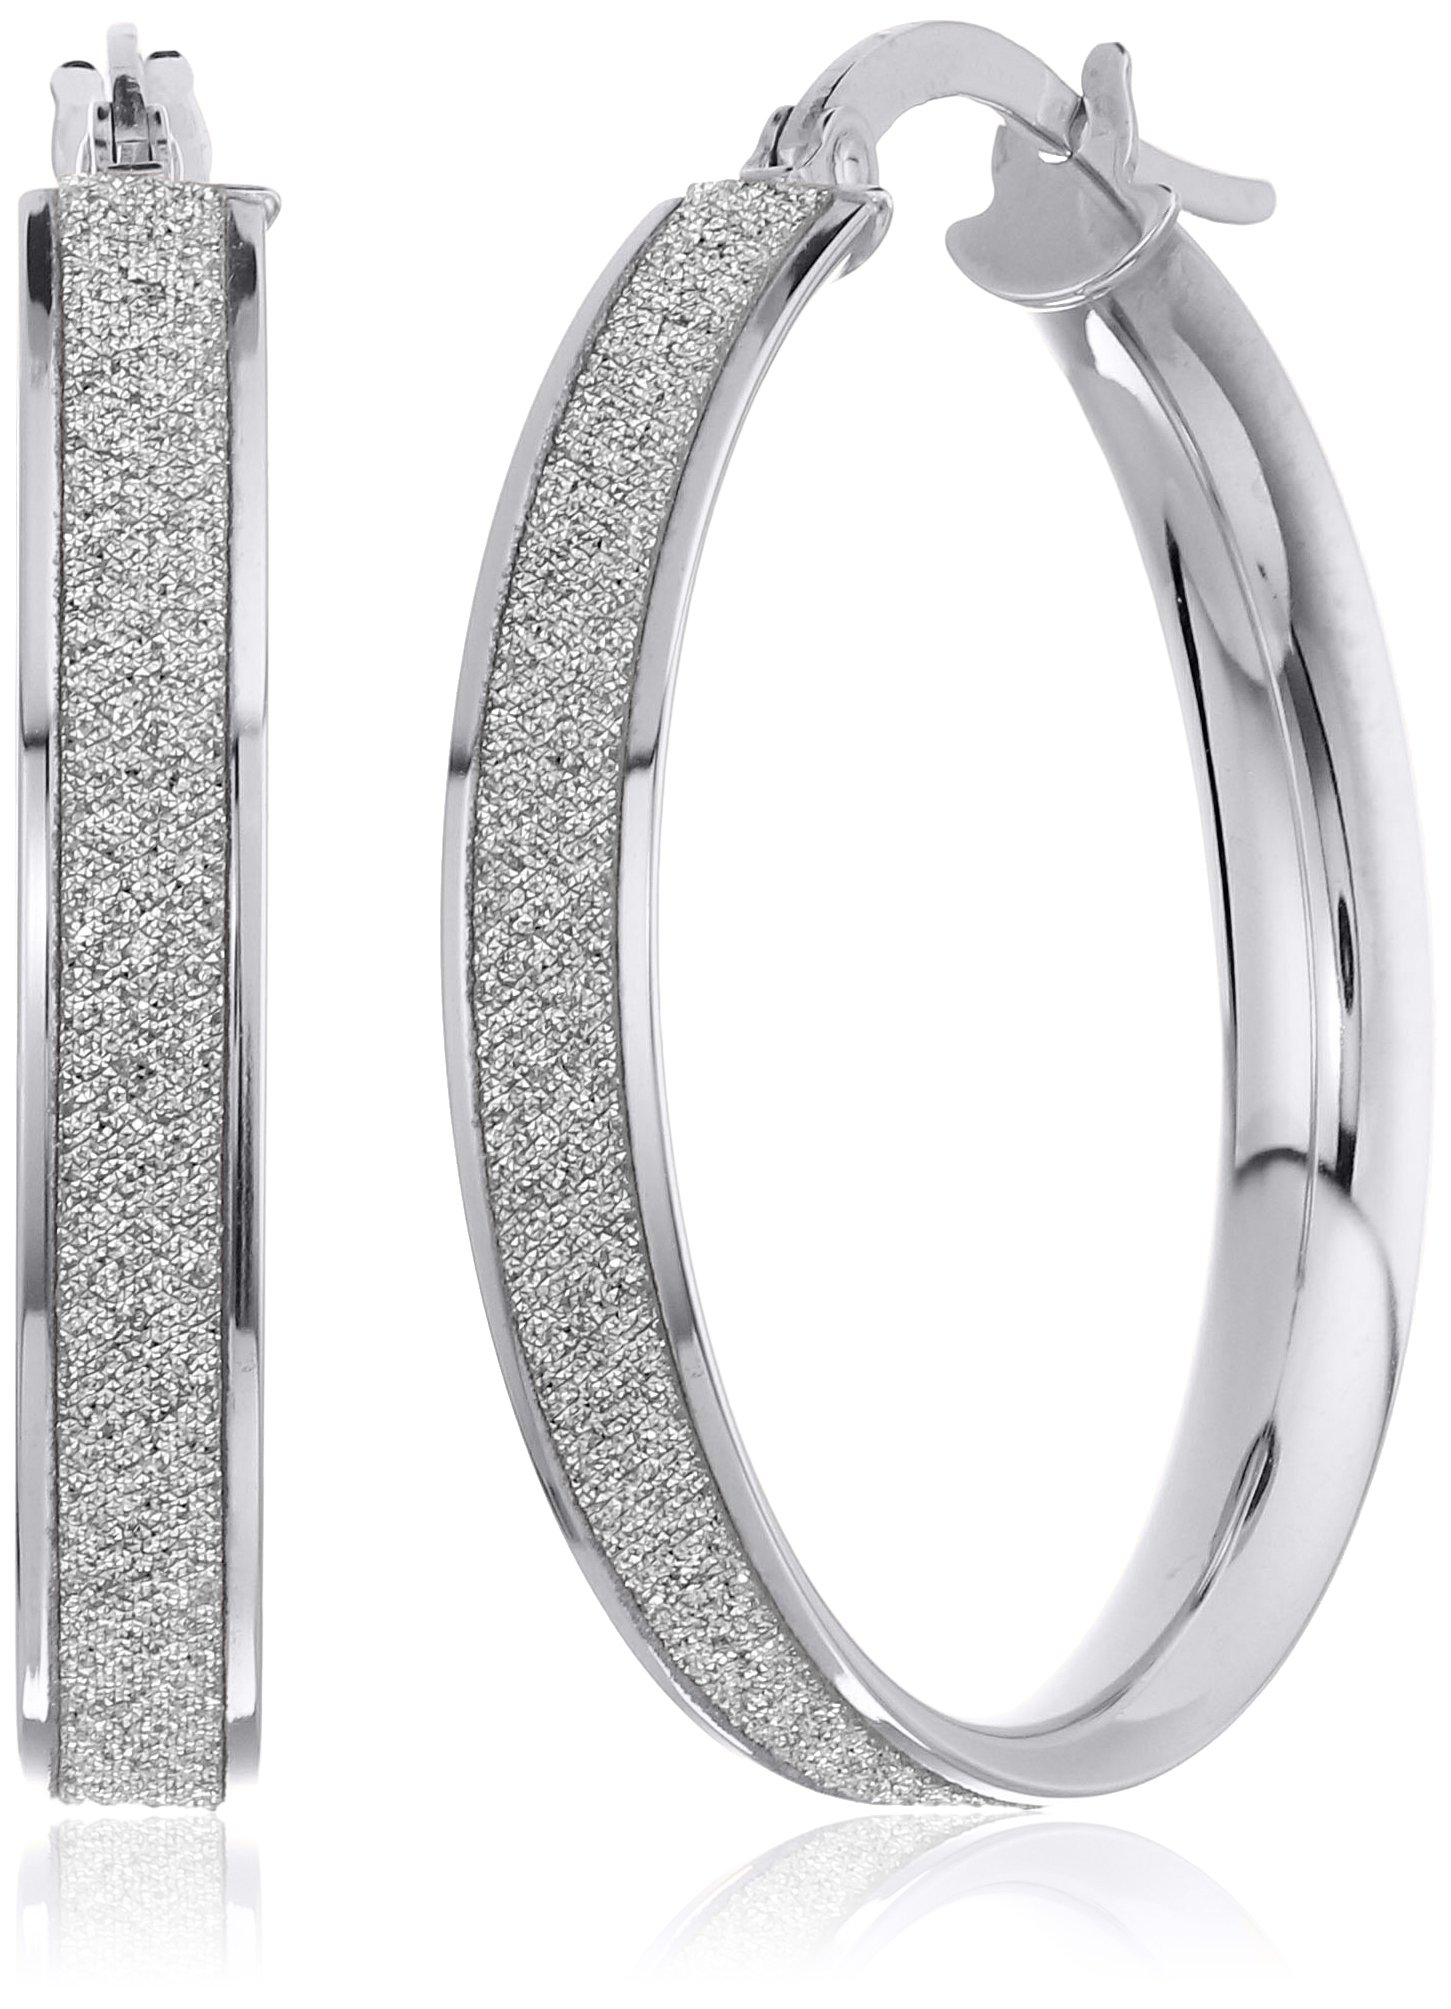 14k White Gold Italian 20 mm Hoop Earrings with Pave Style Glitter Hoop Earrings